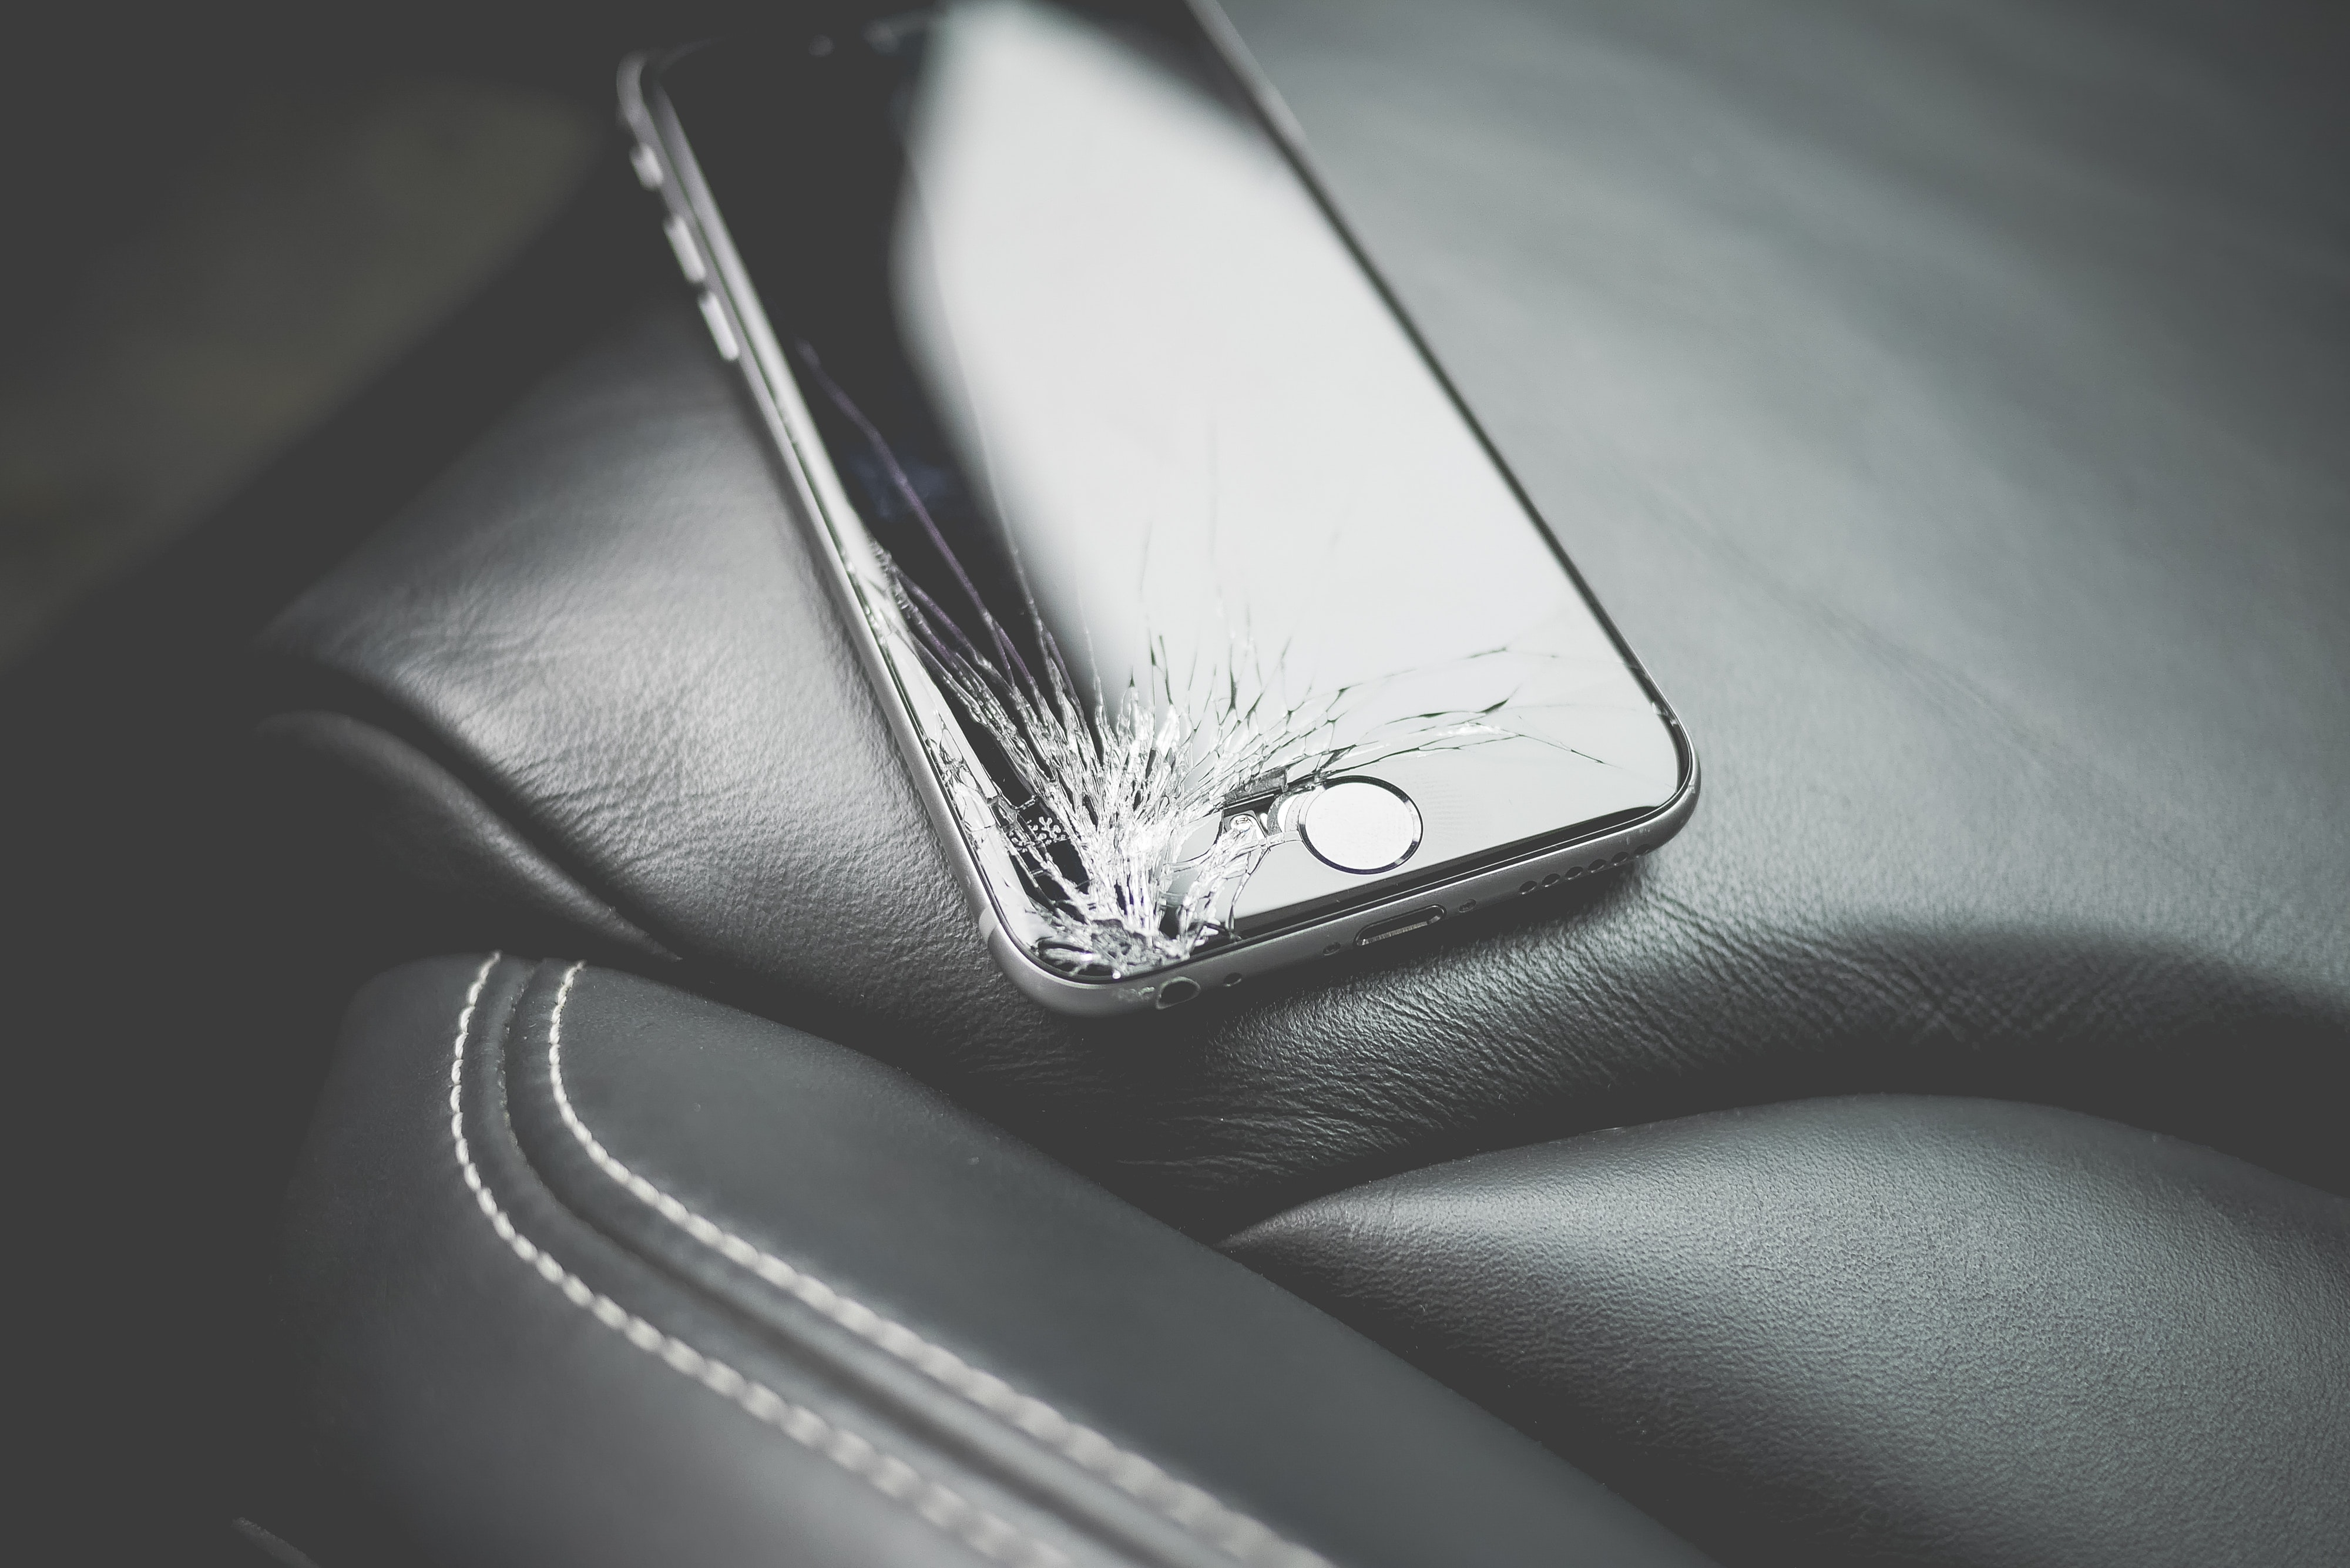 Space gray iphone 6 photo